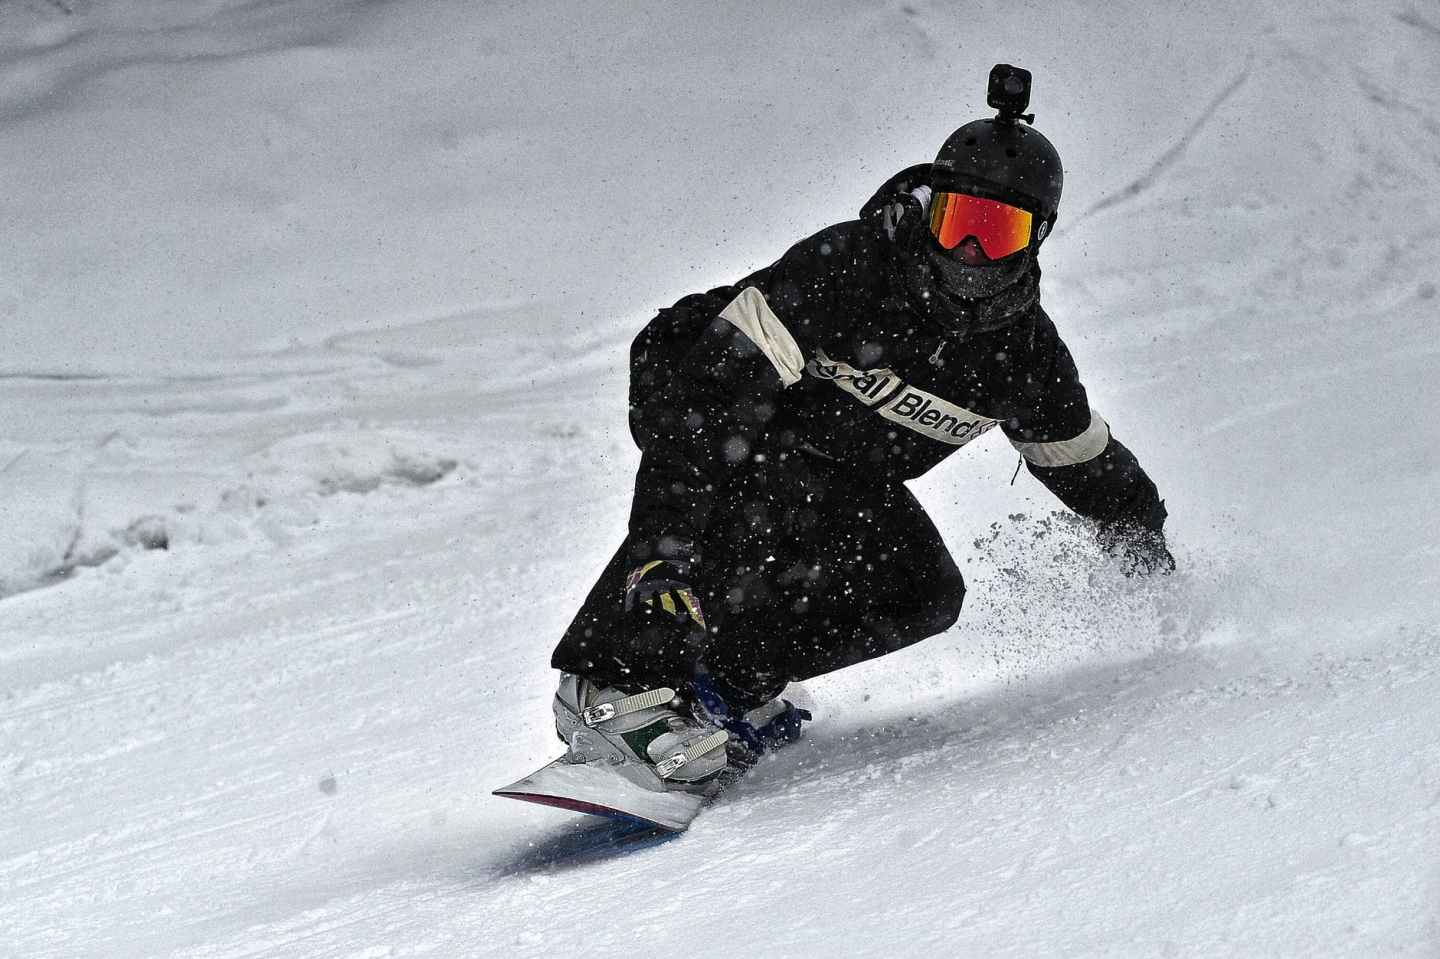 Snowboarder with ski goggles